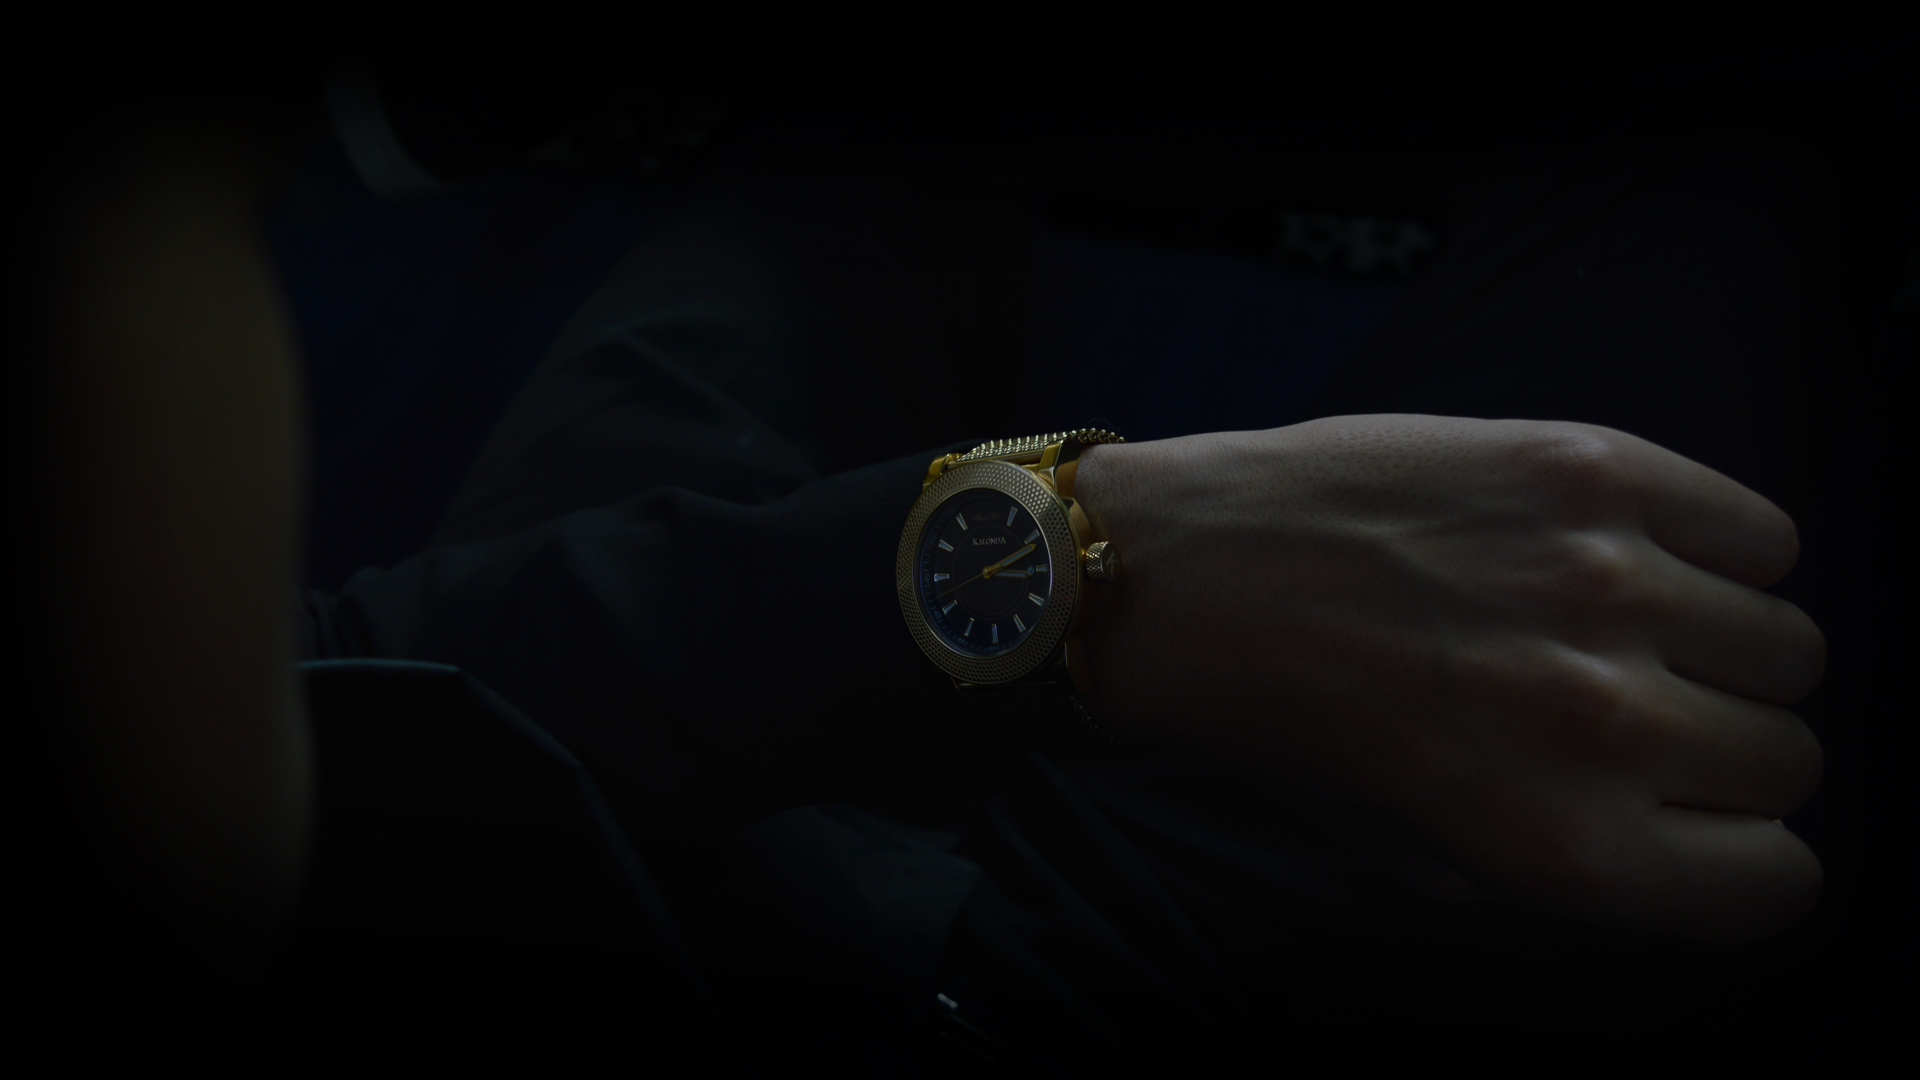 Kalonda - The Royal Gold Watch - looking at the watch